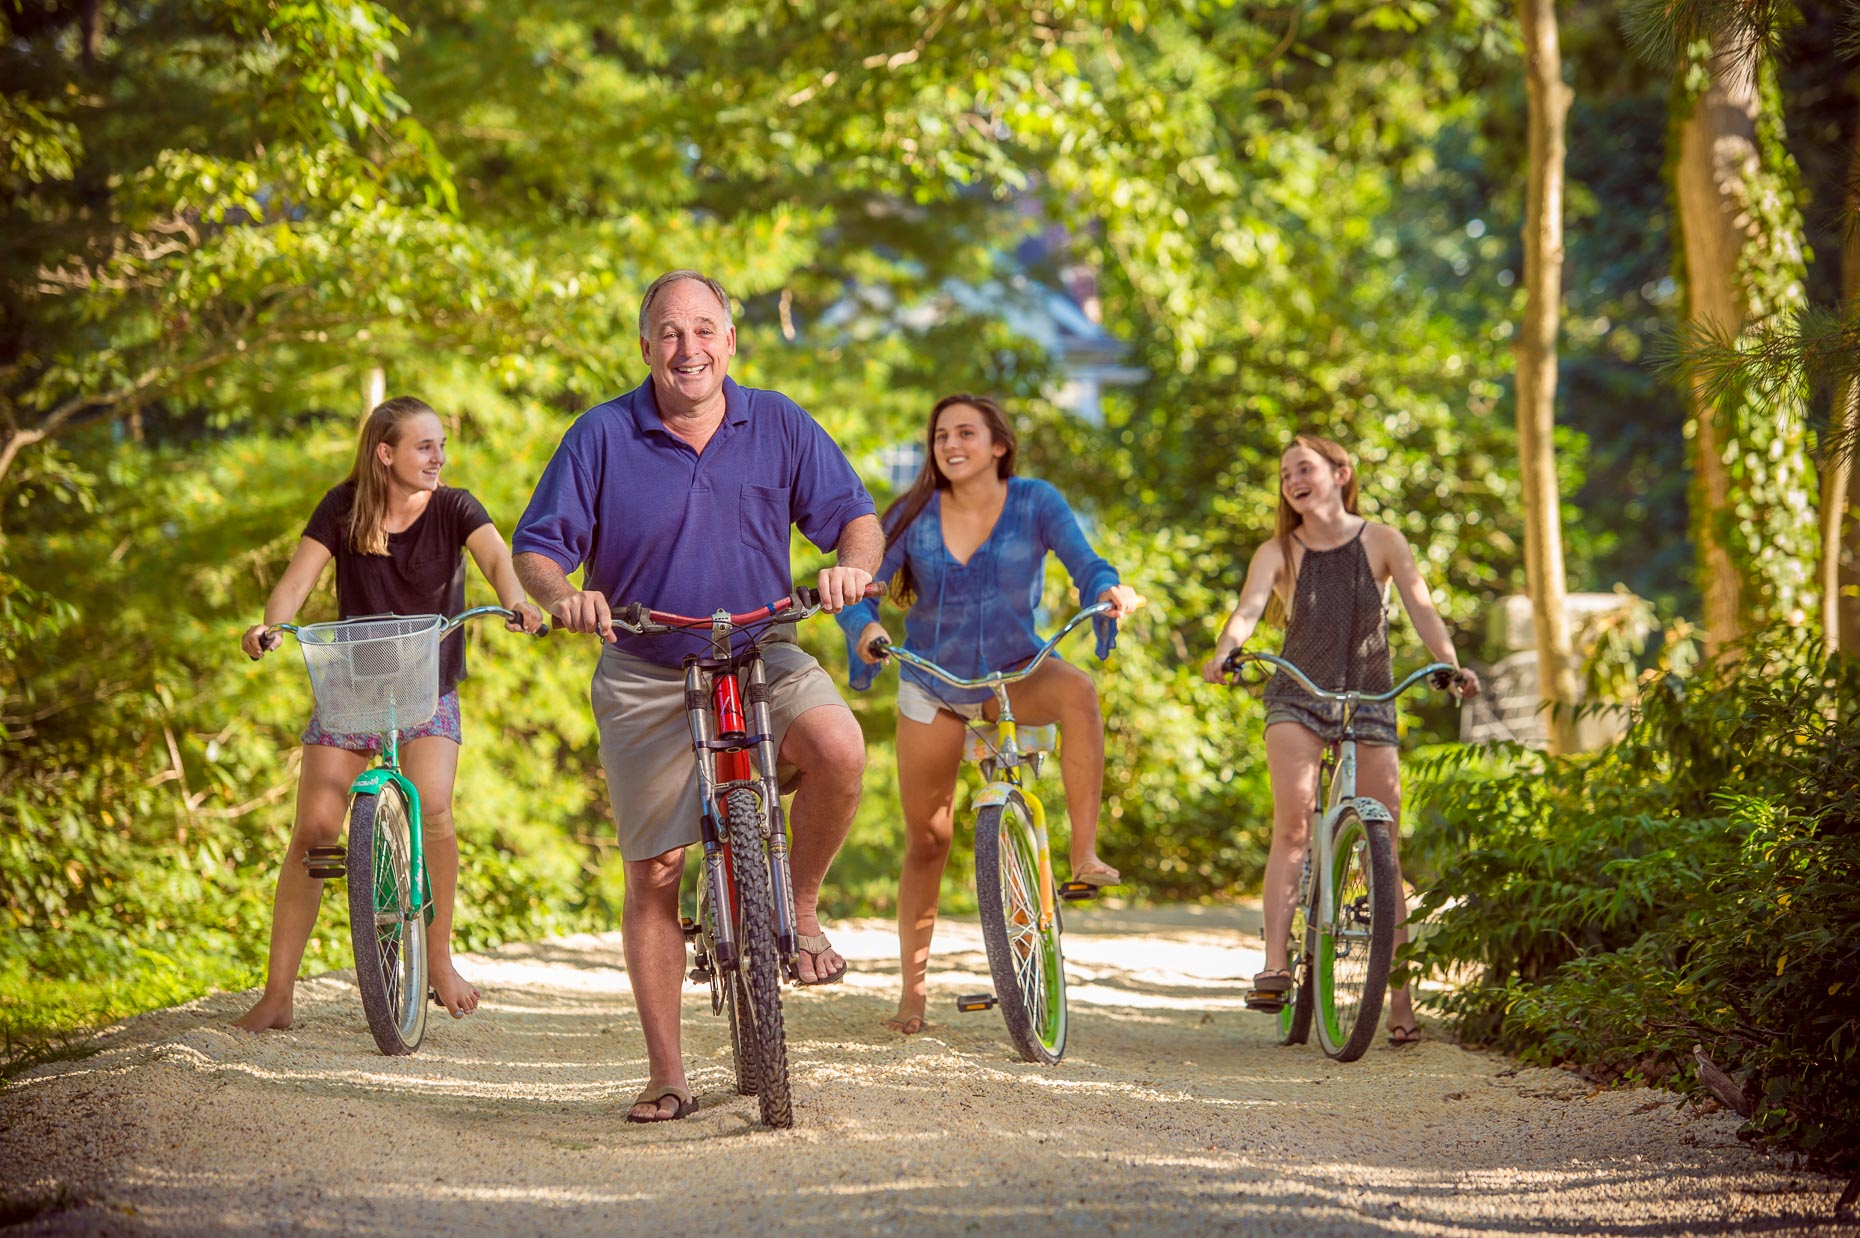 Biking Family Portrait | Editorial Photographer Dave Moser